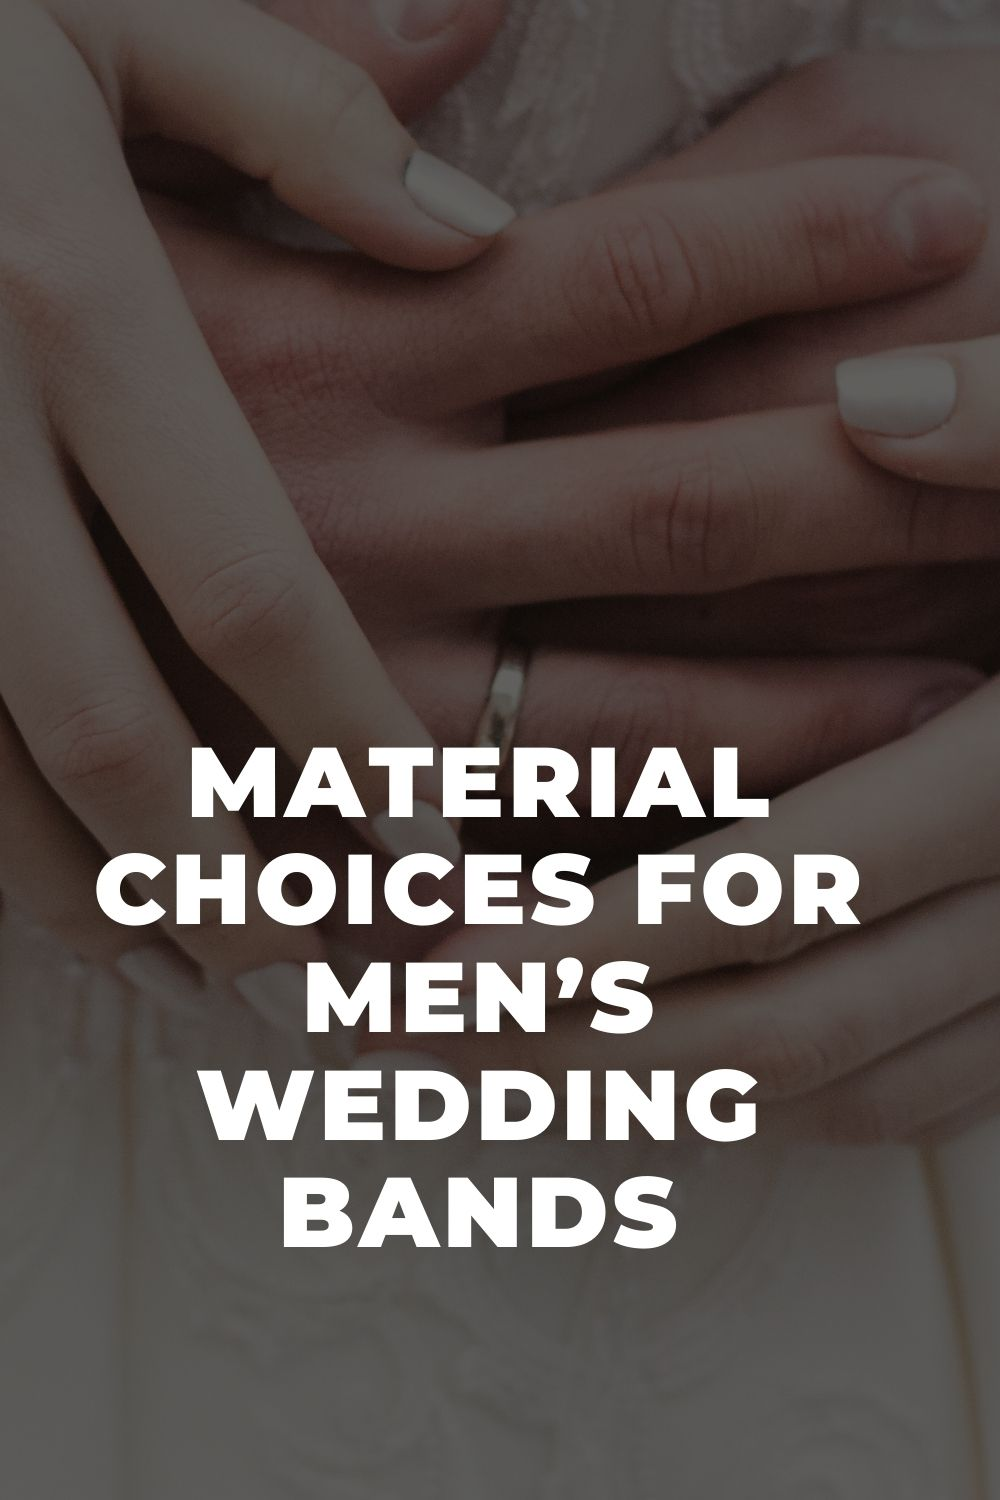 Material Choices For Men's Wedding Bands